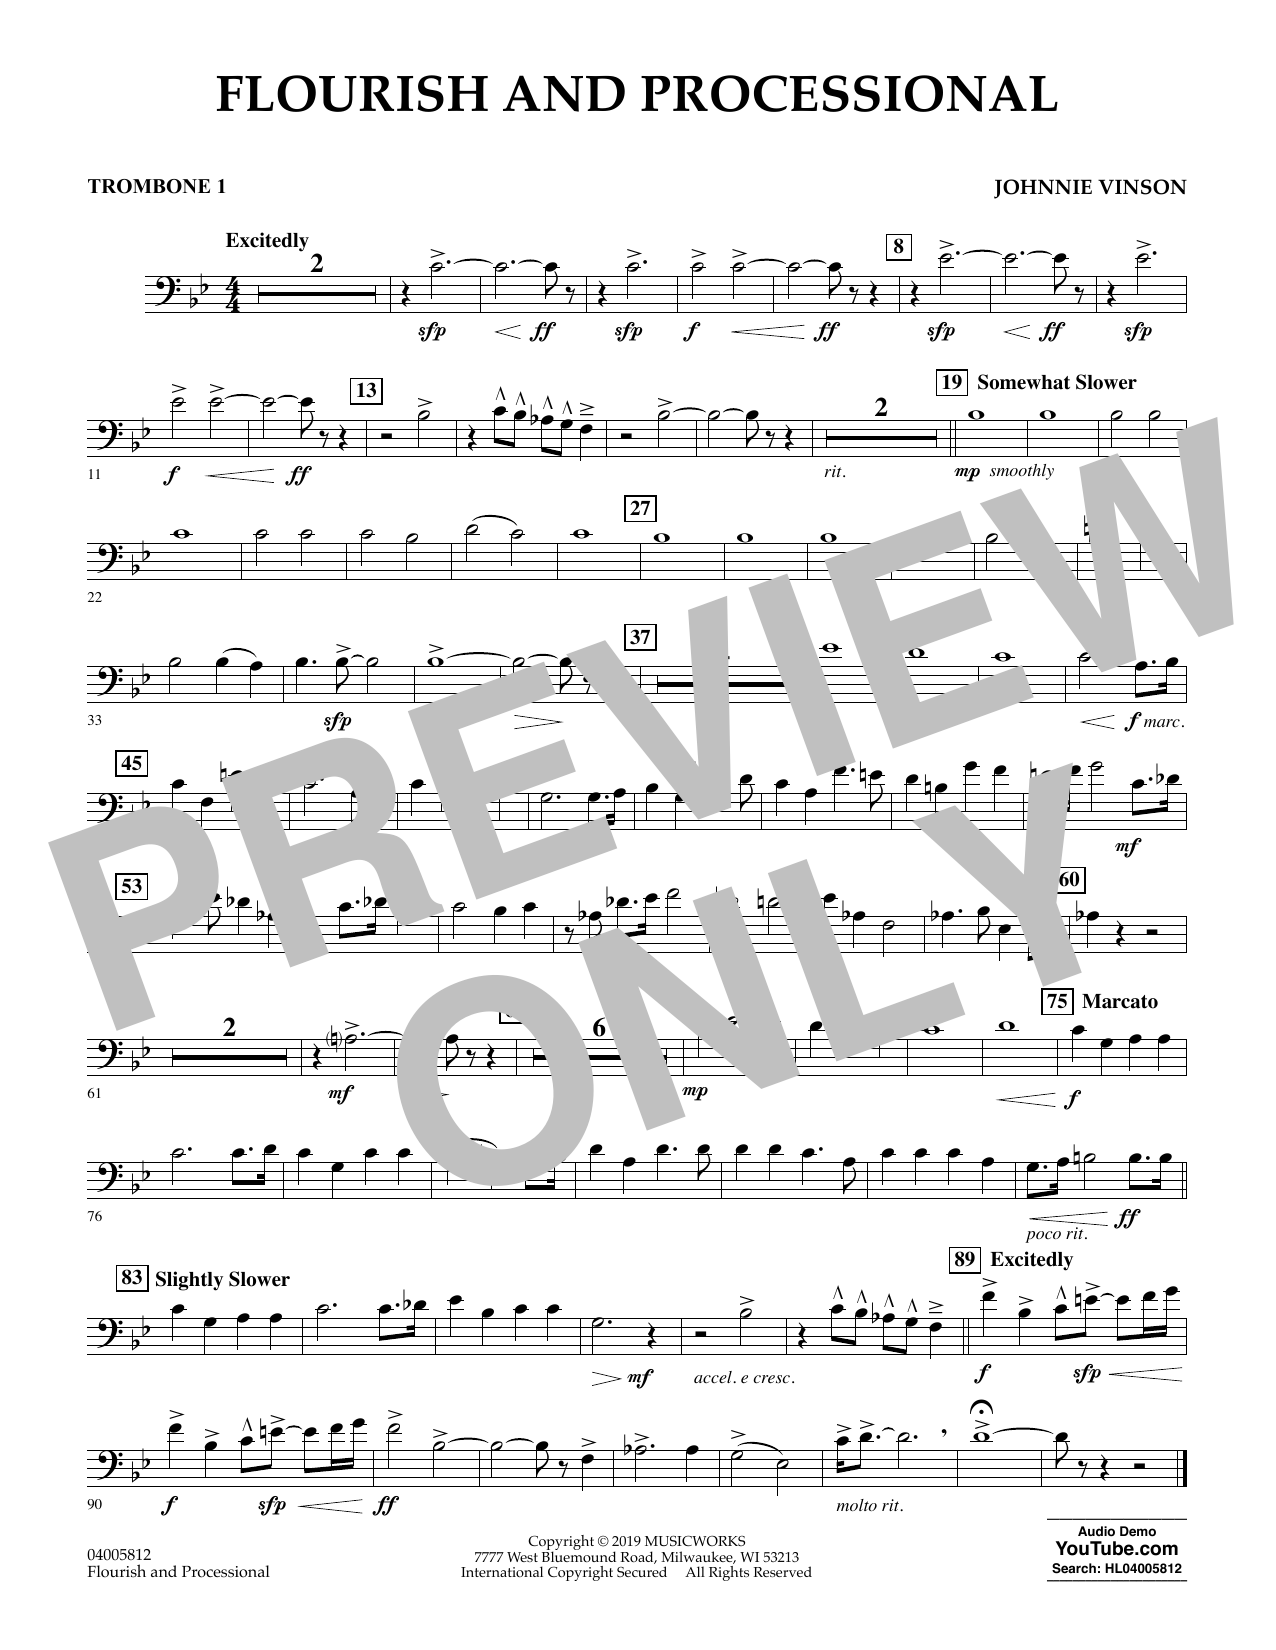 Johnnie Vinson Flourish and Processional - Trombone 1 sheet music preview music notes and score for Concert Band including 1 page(s)